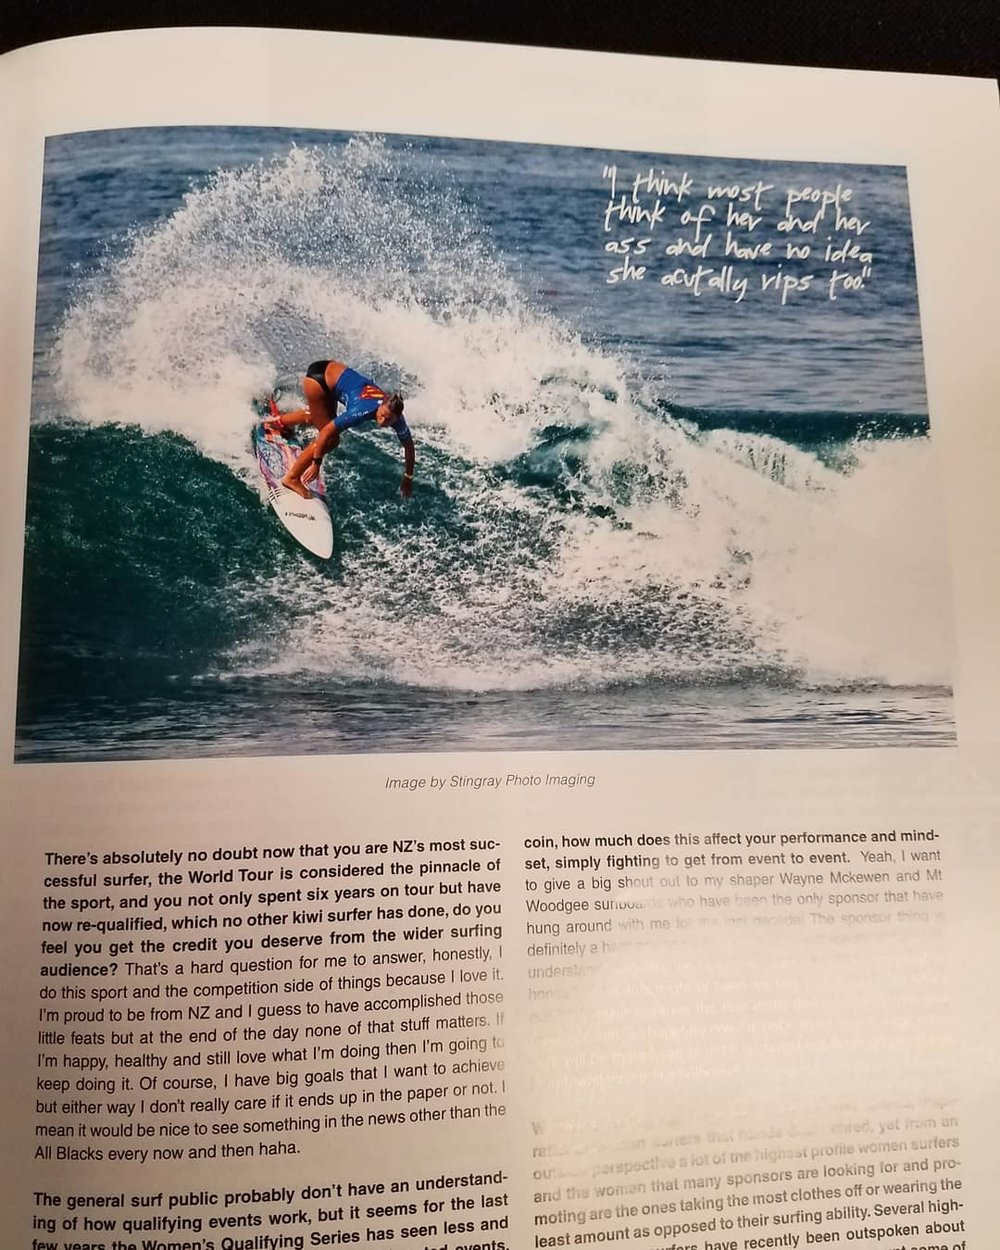 Crappy photo of my image from my phone. (New Zealand Surfing Magazine, Jan/Feb 2018)